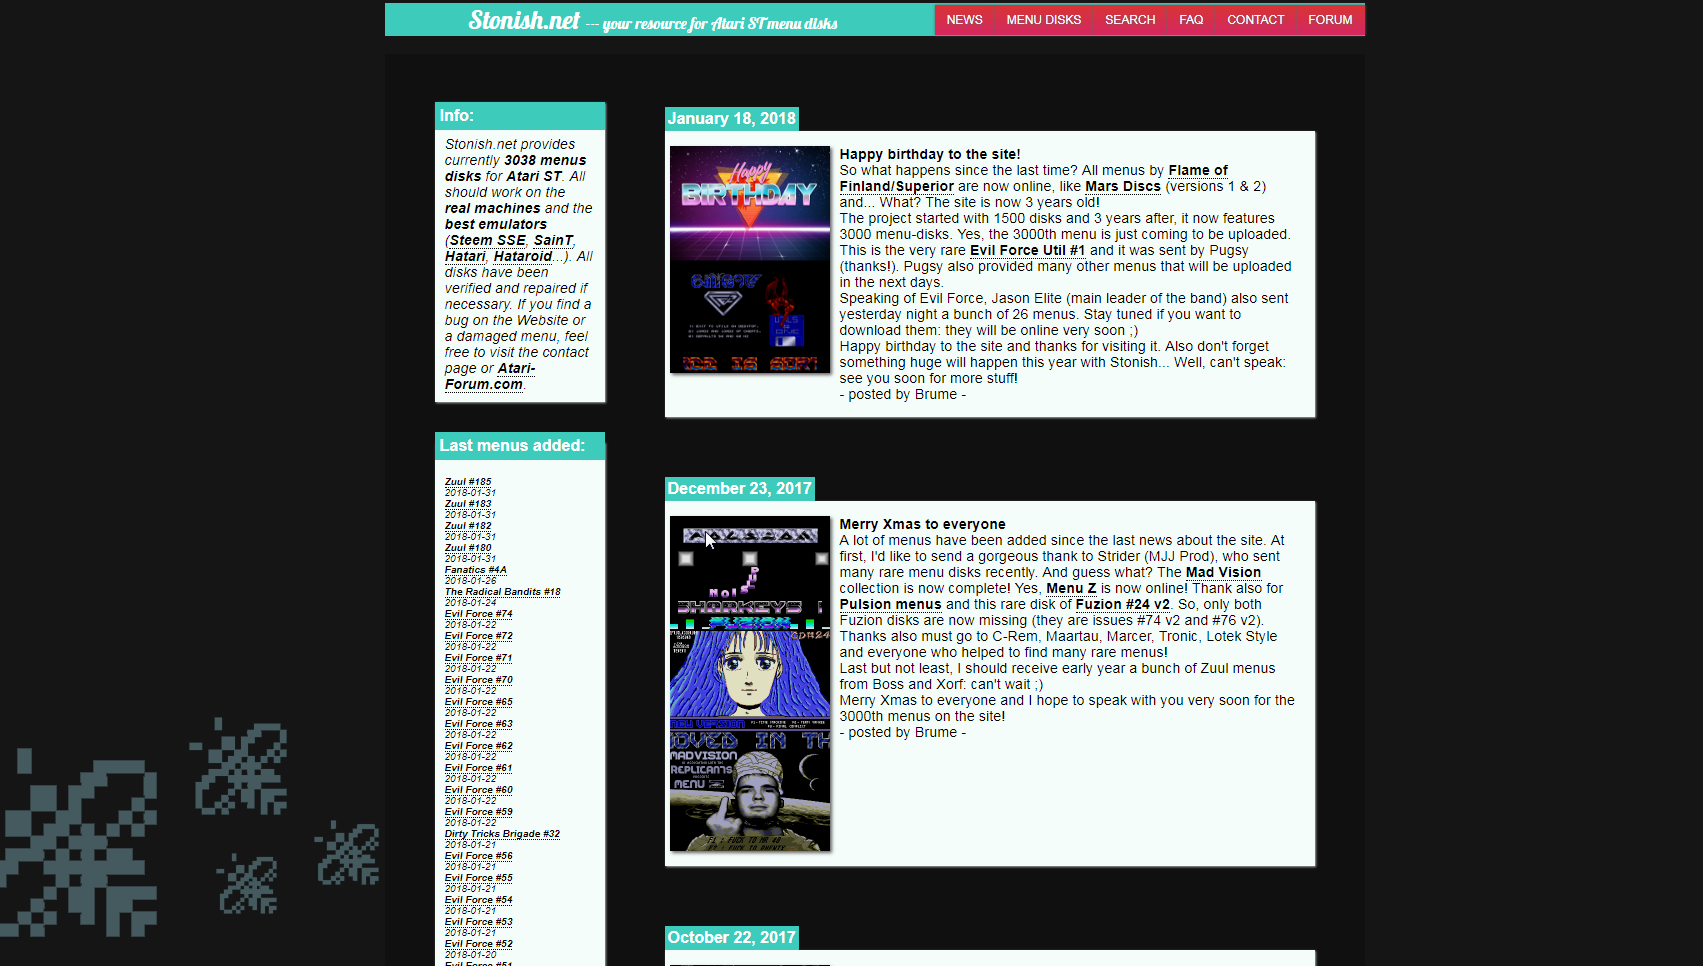 Screenshot of website Stonish